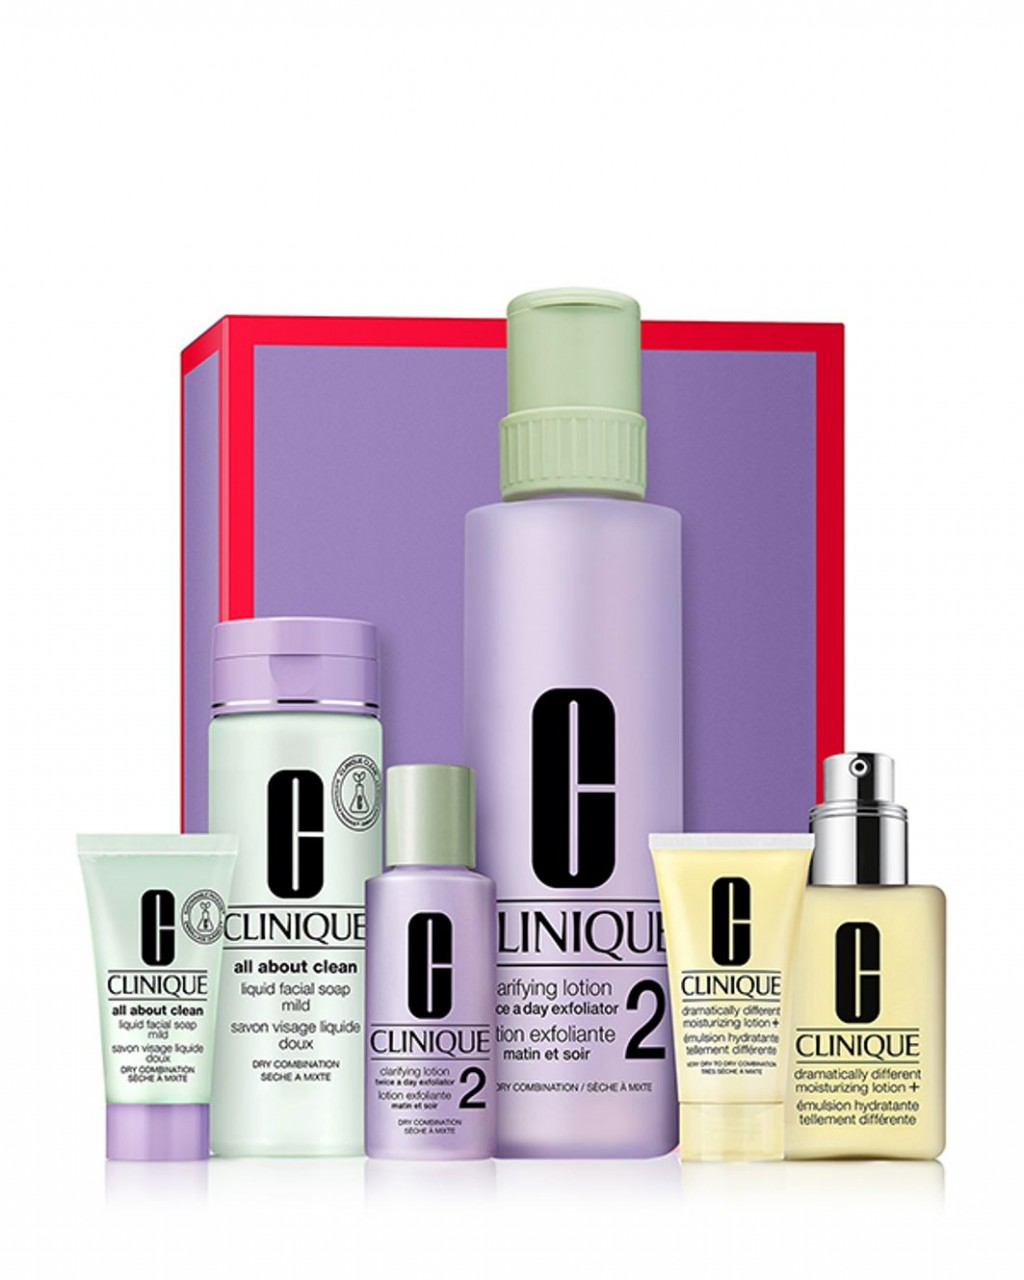 Clinique Great Skin Everywhere 1,2